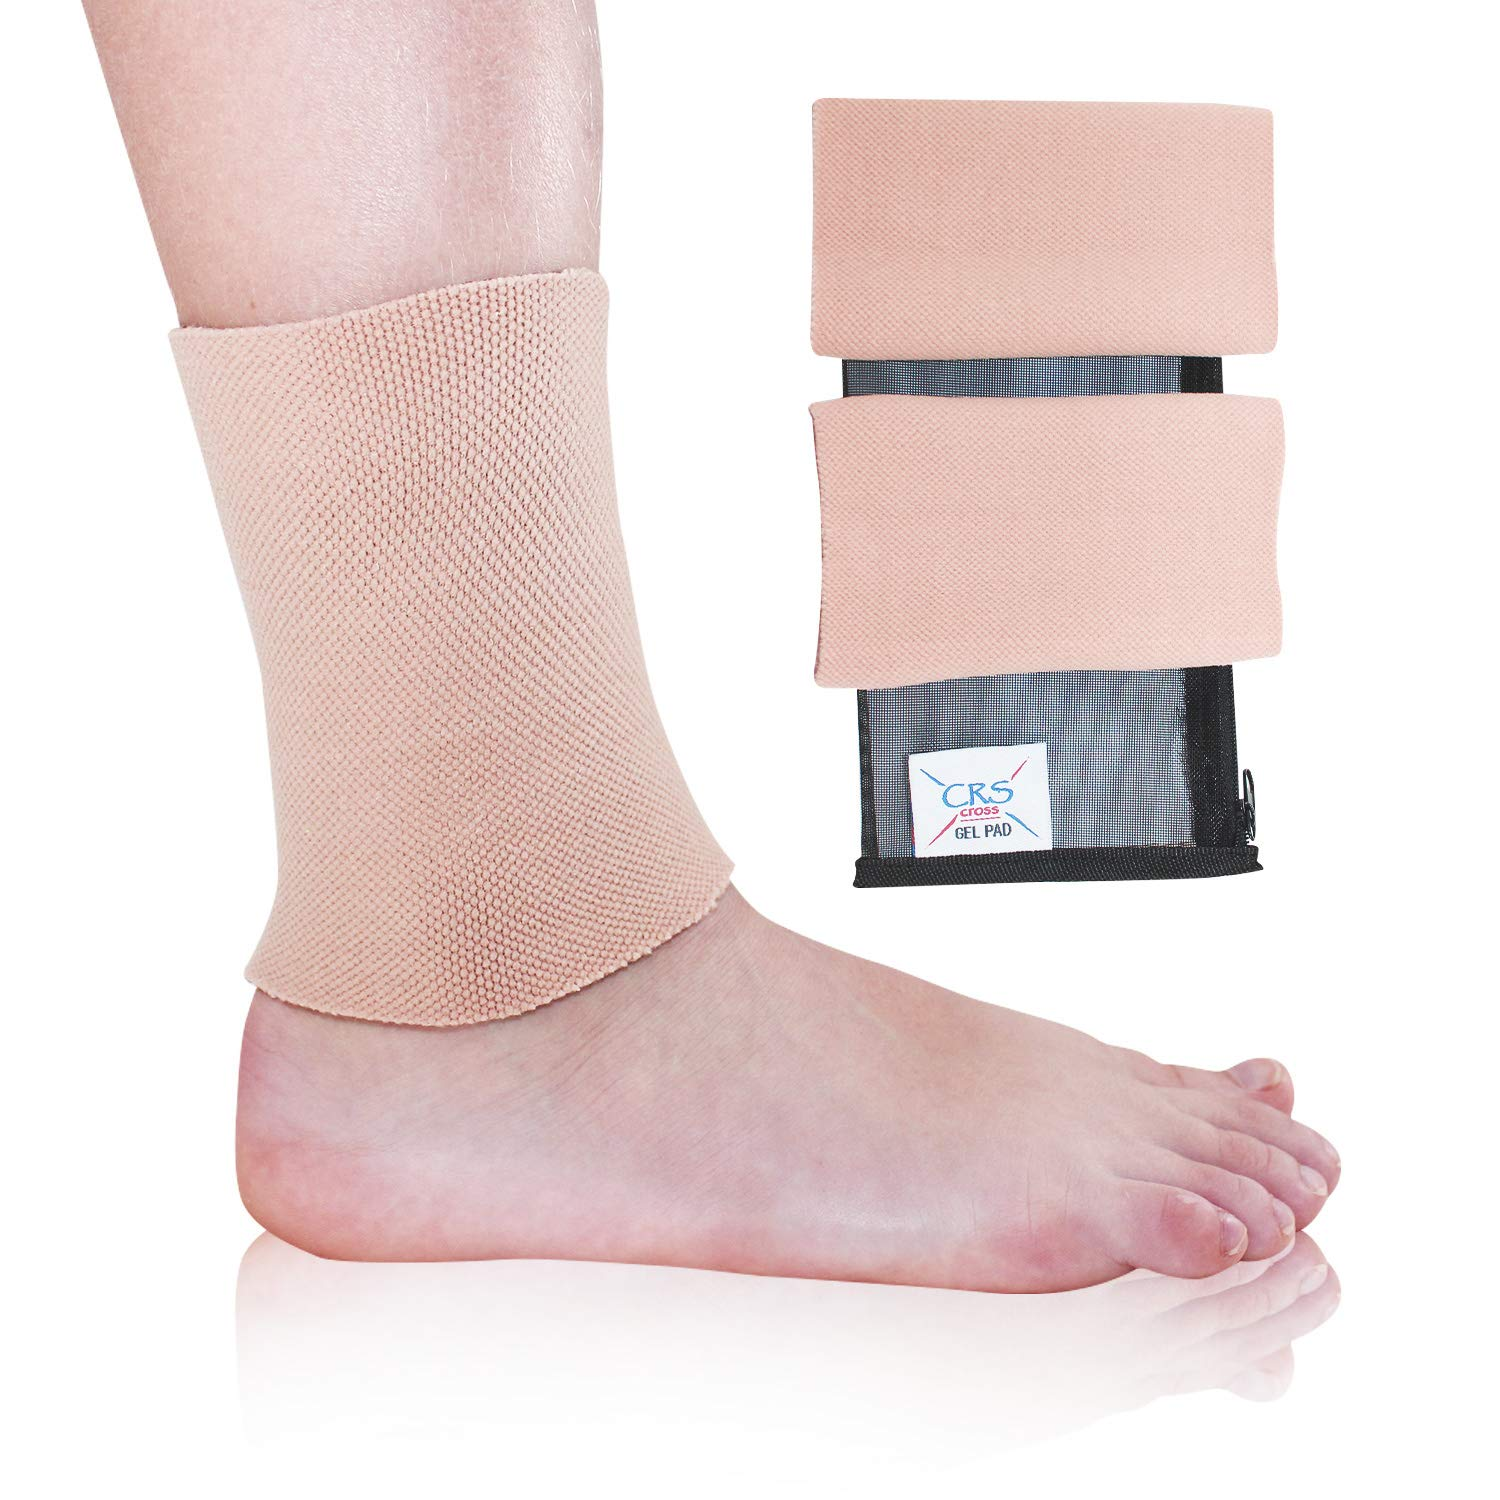 CRS Cross Ankle Gel Sleeves - Padded Skate Socks Ankle Protection (Figure Skating, Hockey, Roller, Inline, Riding, ski or Equestrian Tall Boots) (2 Gel Sleeves)